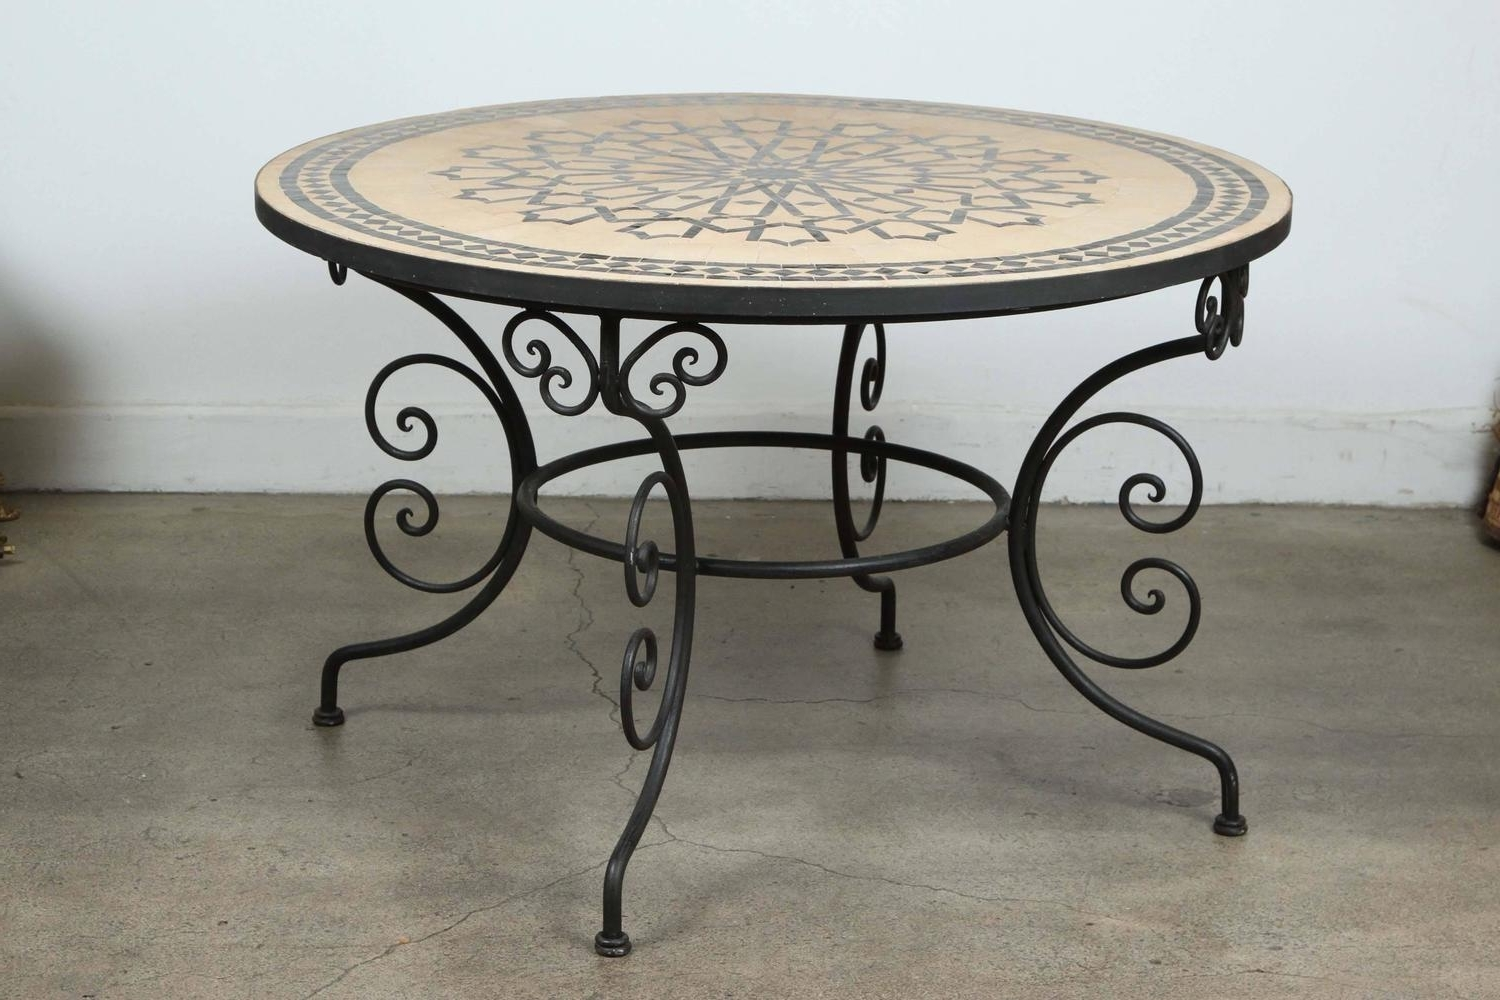 Latest Moroccan Outdoor Round Mosaic Tile Dining Table On Iron Base 47 In For Mosaic Dining Tables For Sale (View 7 of 25)